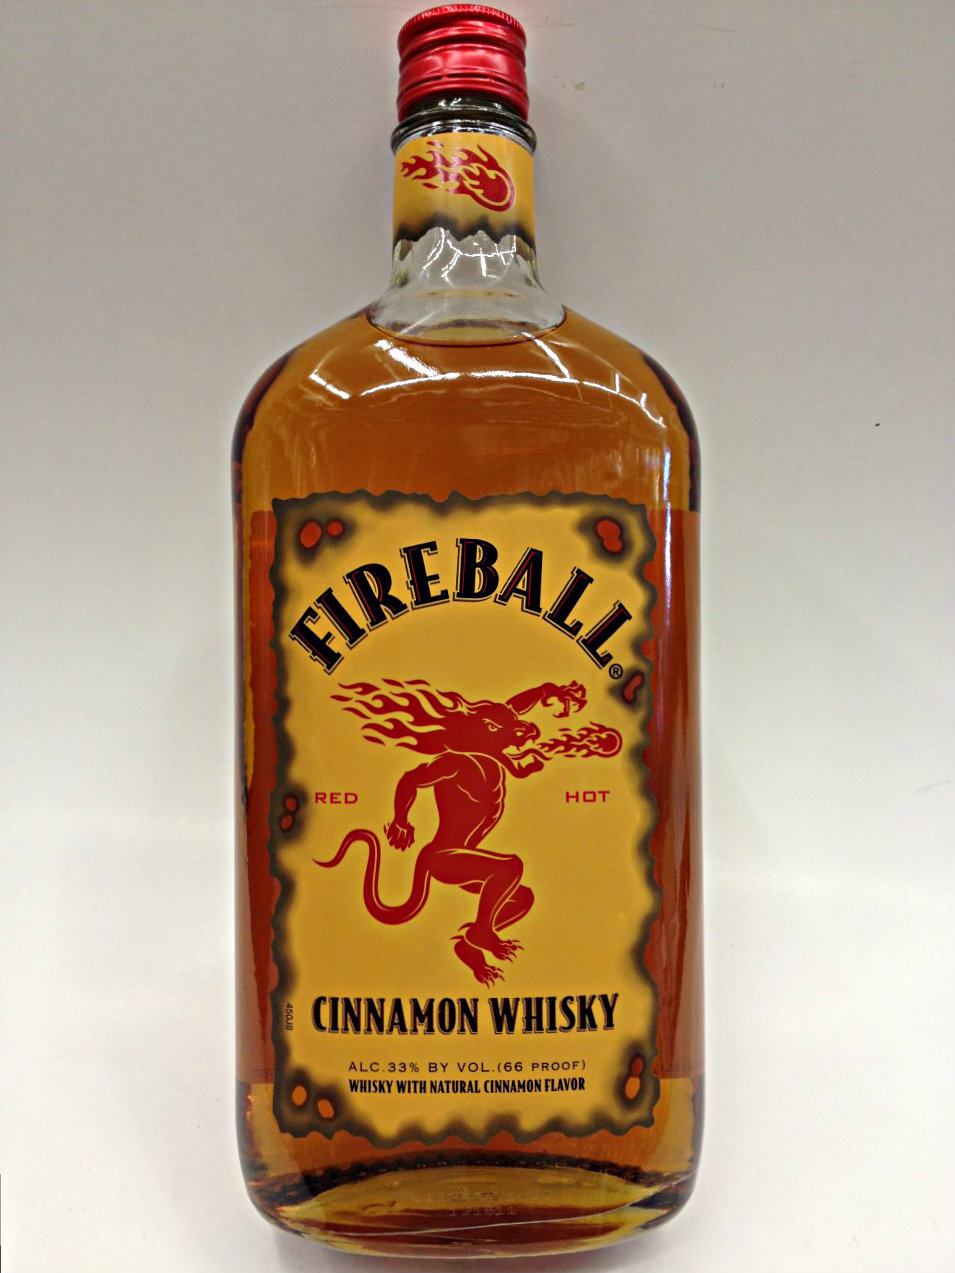 Communication on this topic: How to Drink Fireball, how-to-drink-fireball/